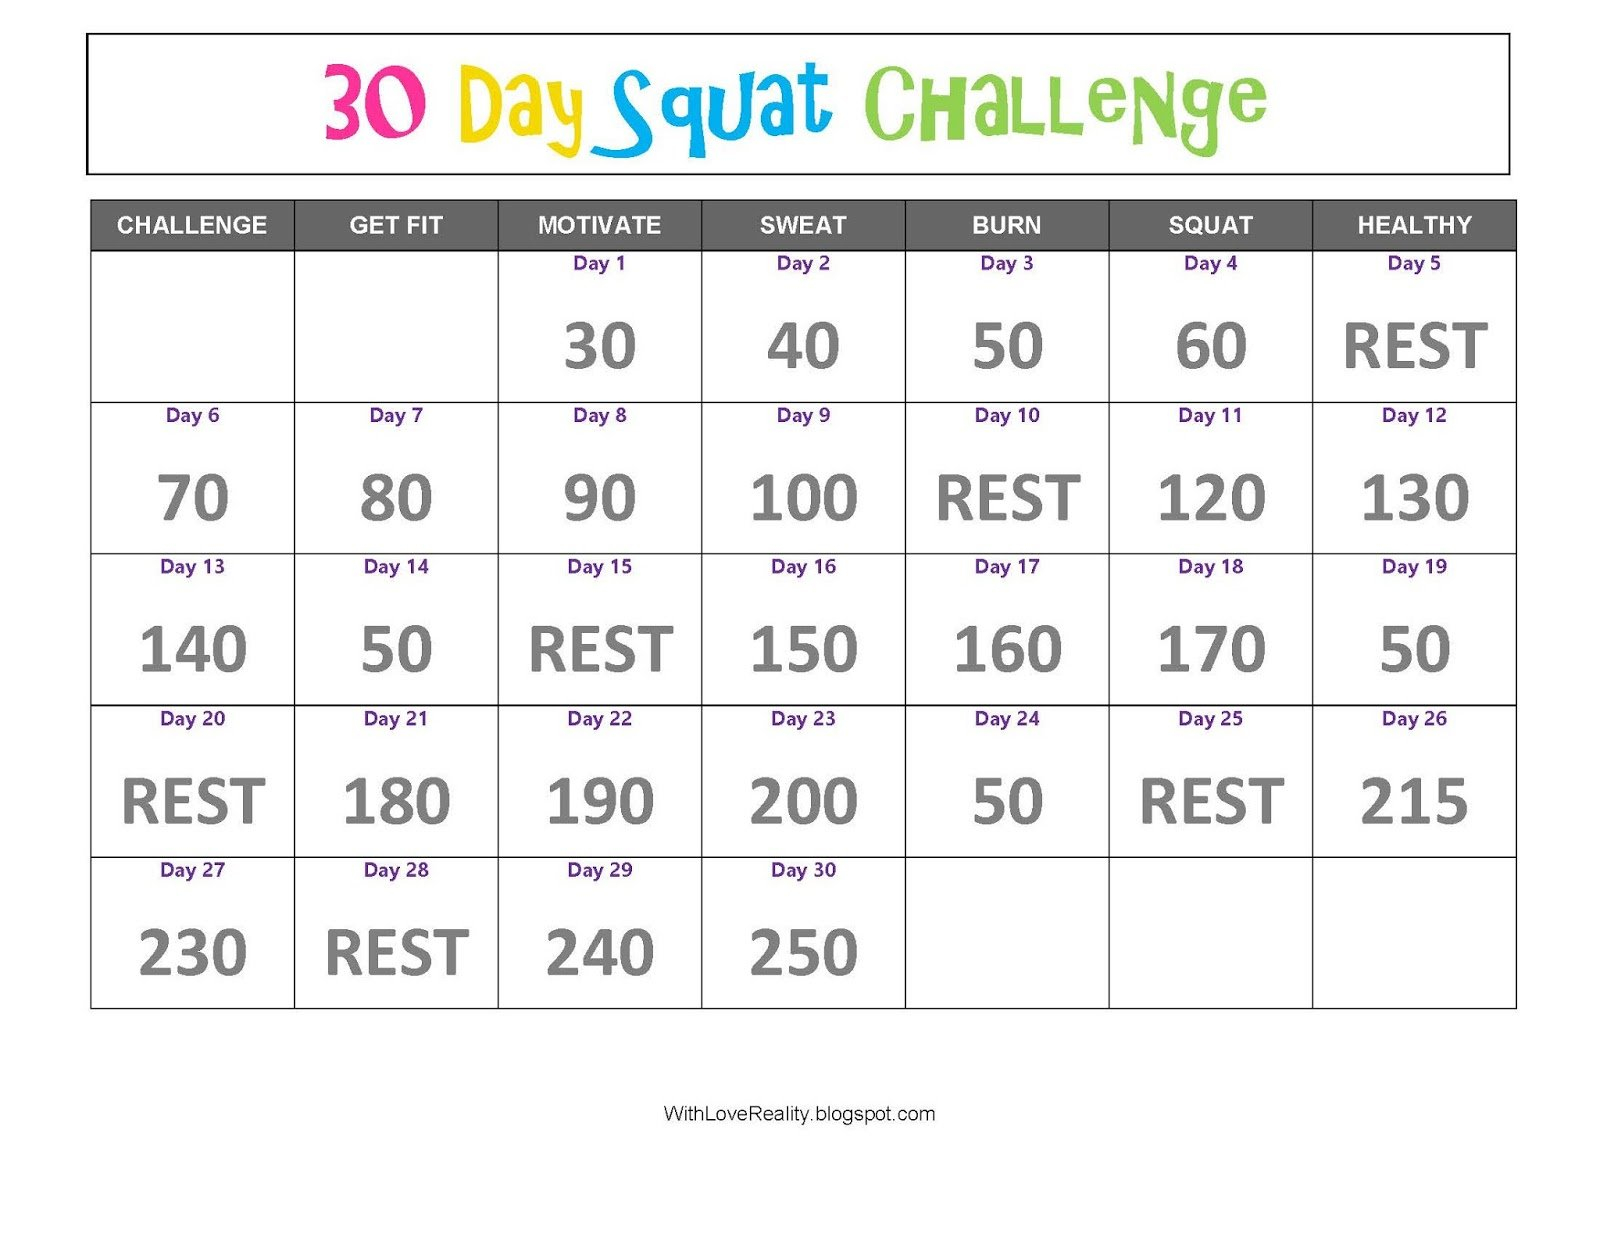 With Love, Reality: 30 Day Squat Challenge 30 Day Squat Challenge Schedule Calendar